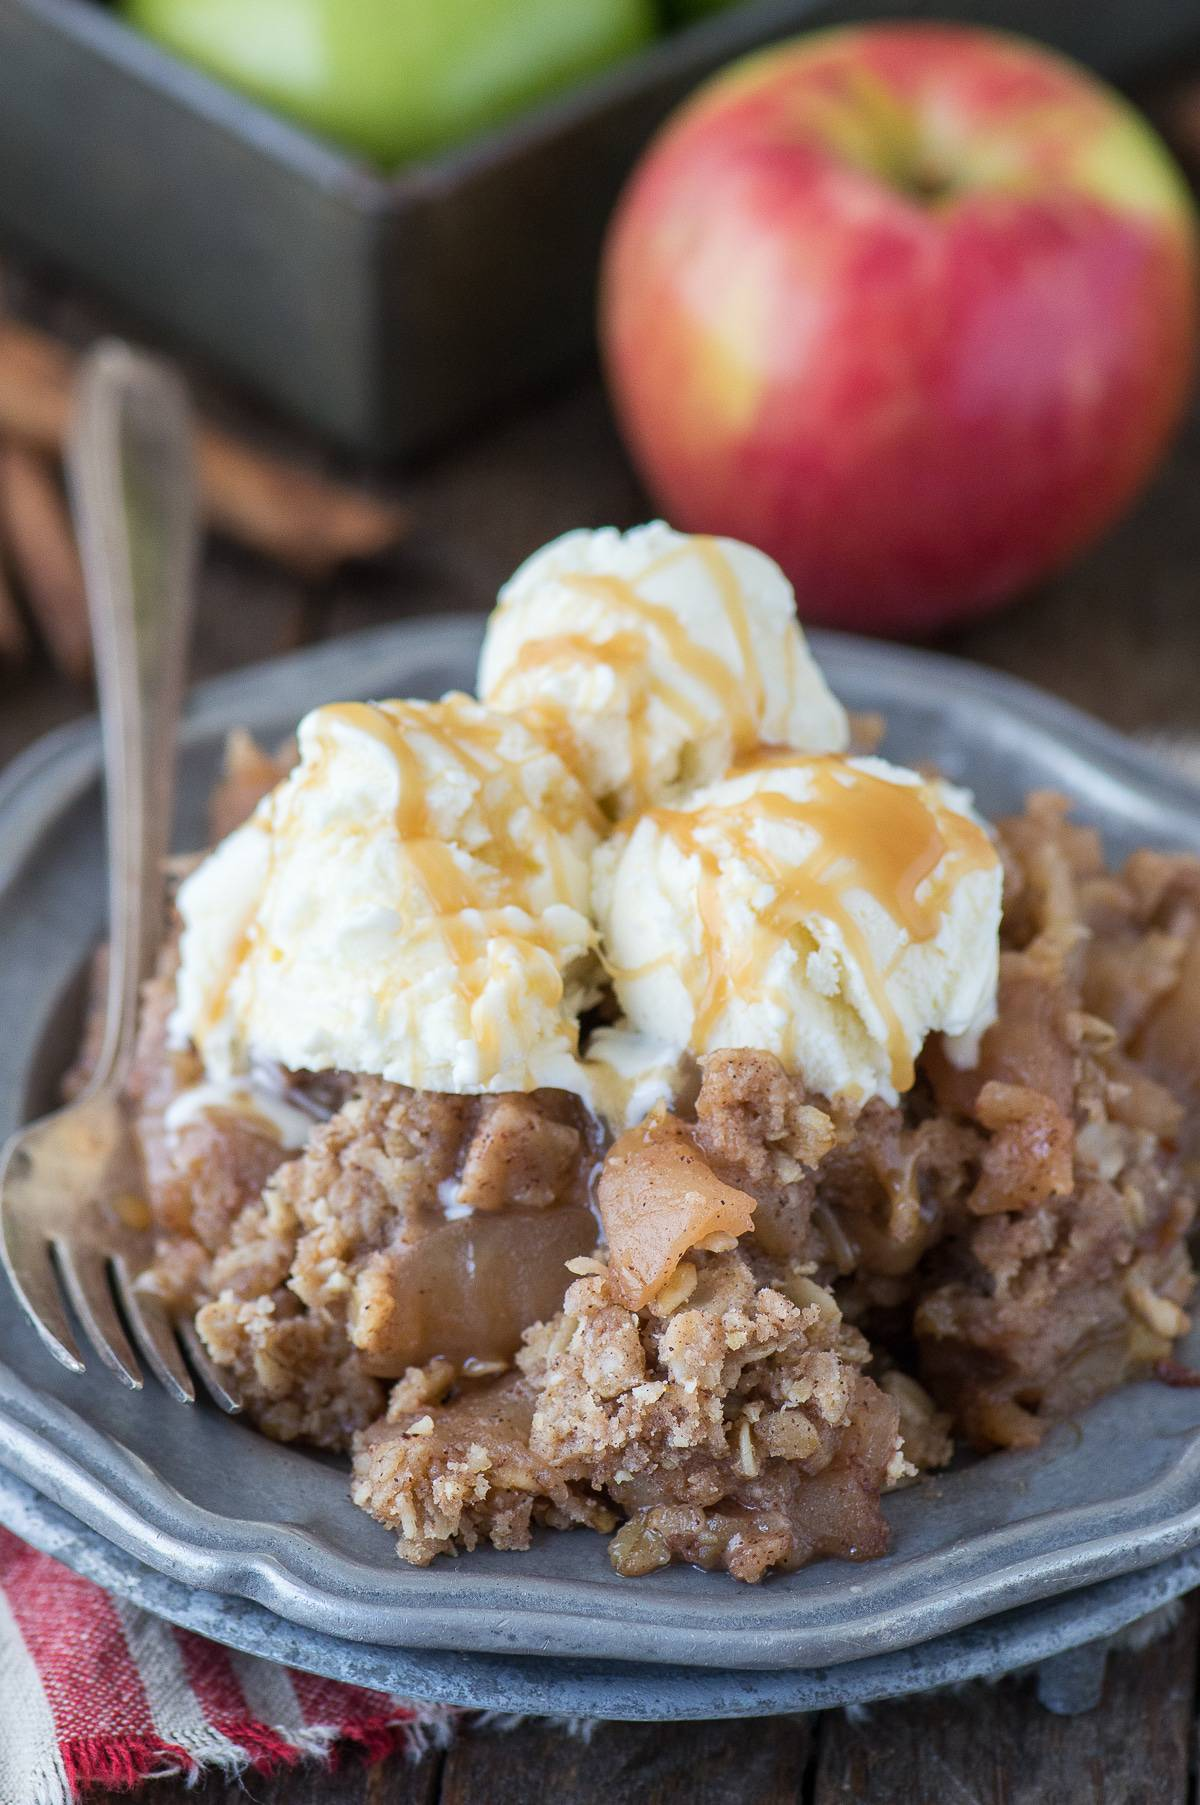 The best crock pot apple crisp! The apples are tender and full of cinnamon flavor - the oat topping is soft and sweet. This is our favorite crisp recipe and plus it smells amazing while it's cooking!